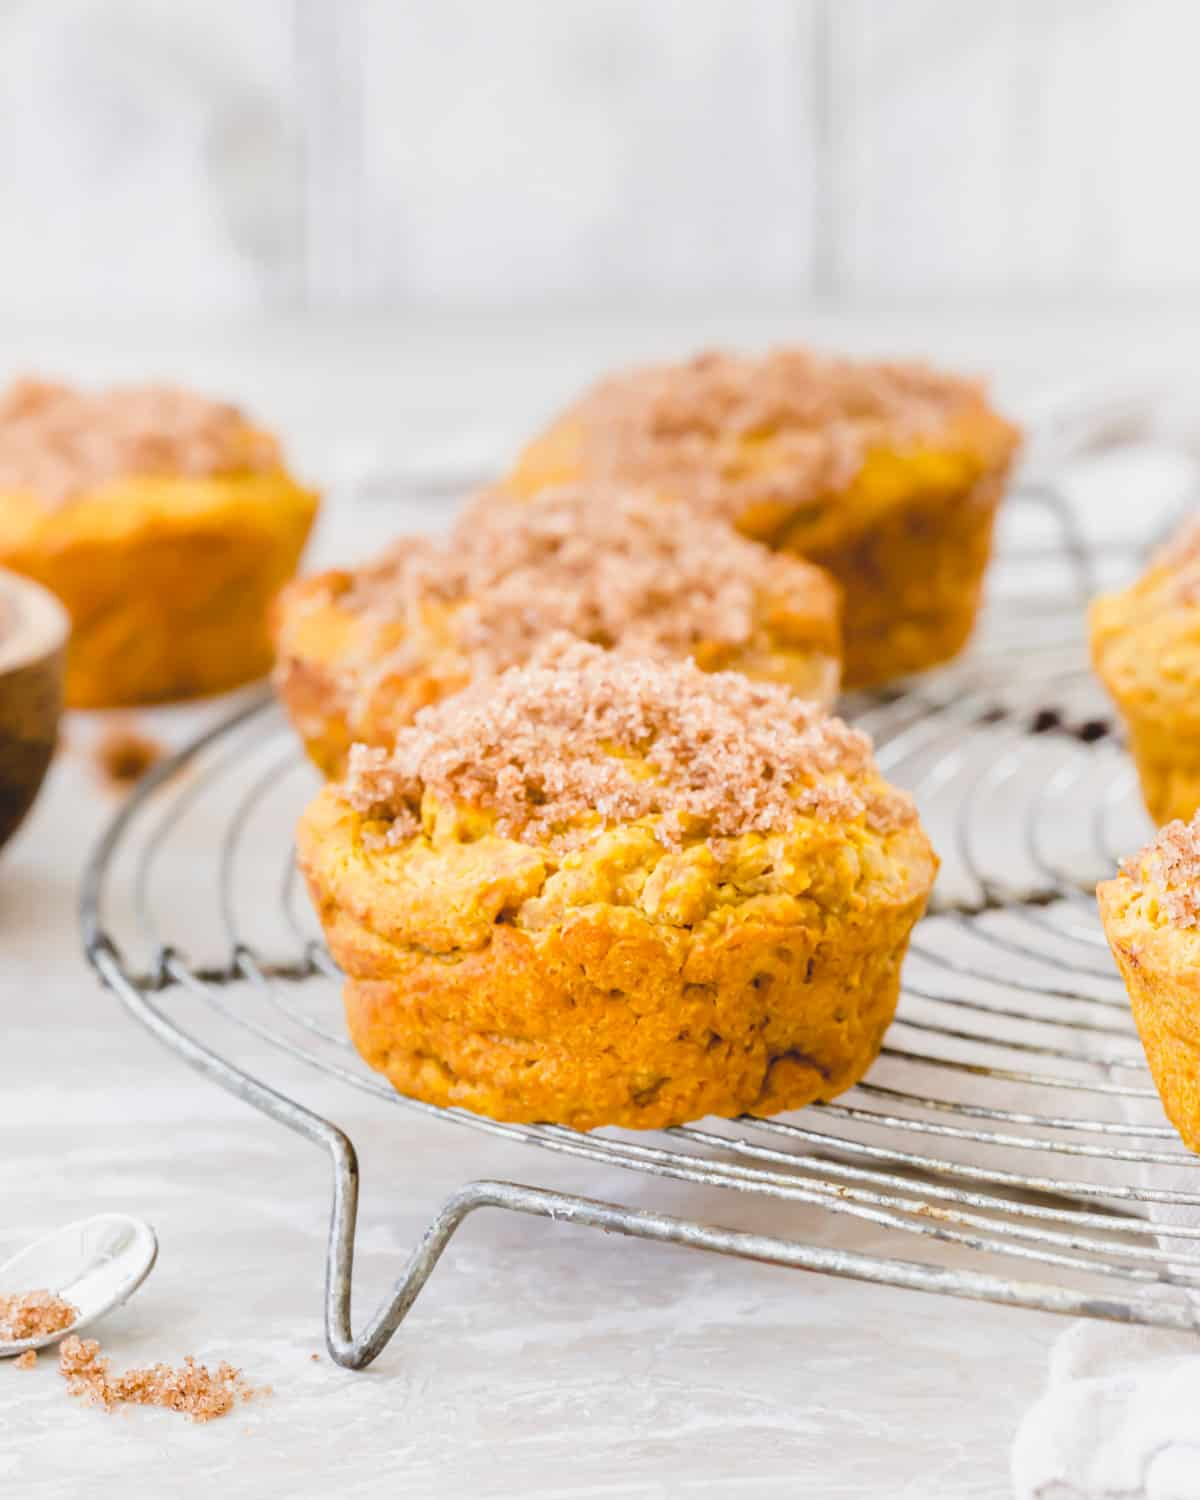 Gluten-free pumpkin muffins are an easy fall treat you'll love. They're made with simple ingredients like gluten-free & oat flours, warming pumpkin spices and topped with cinnamon sugar. They're dairy-free and vegan too!